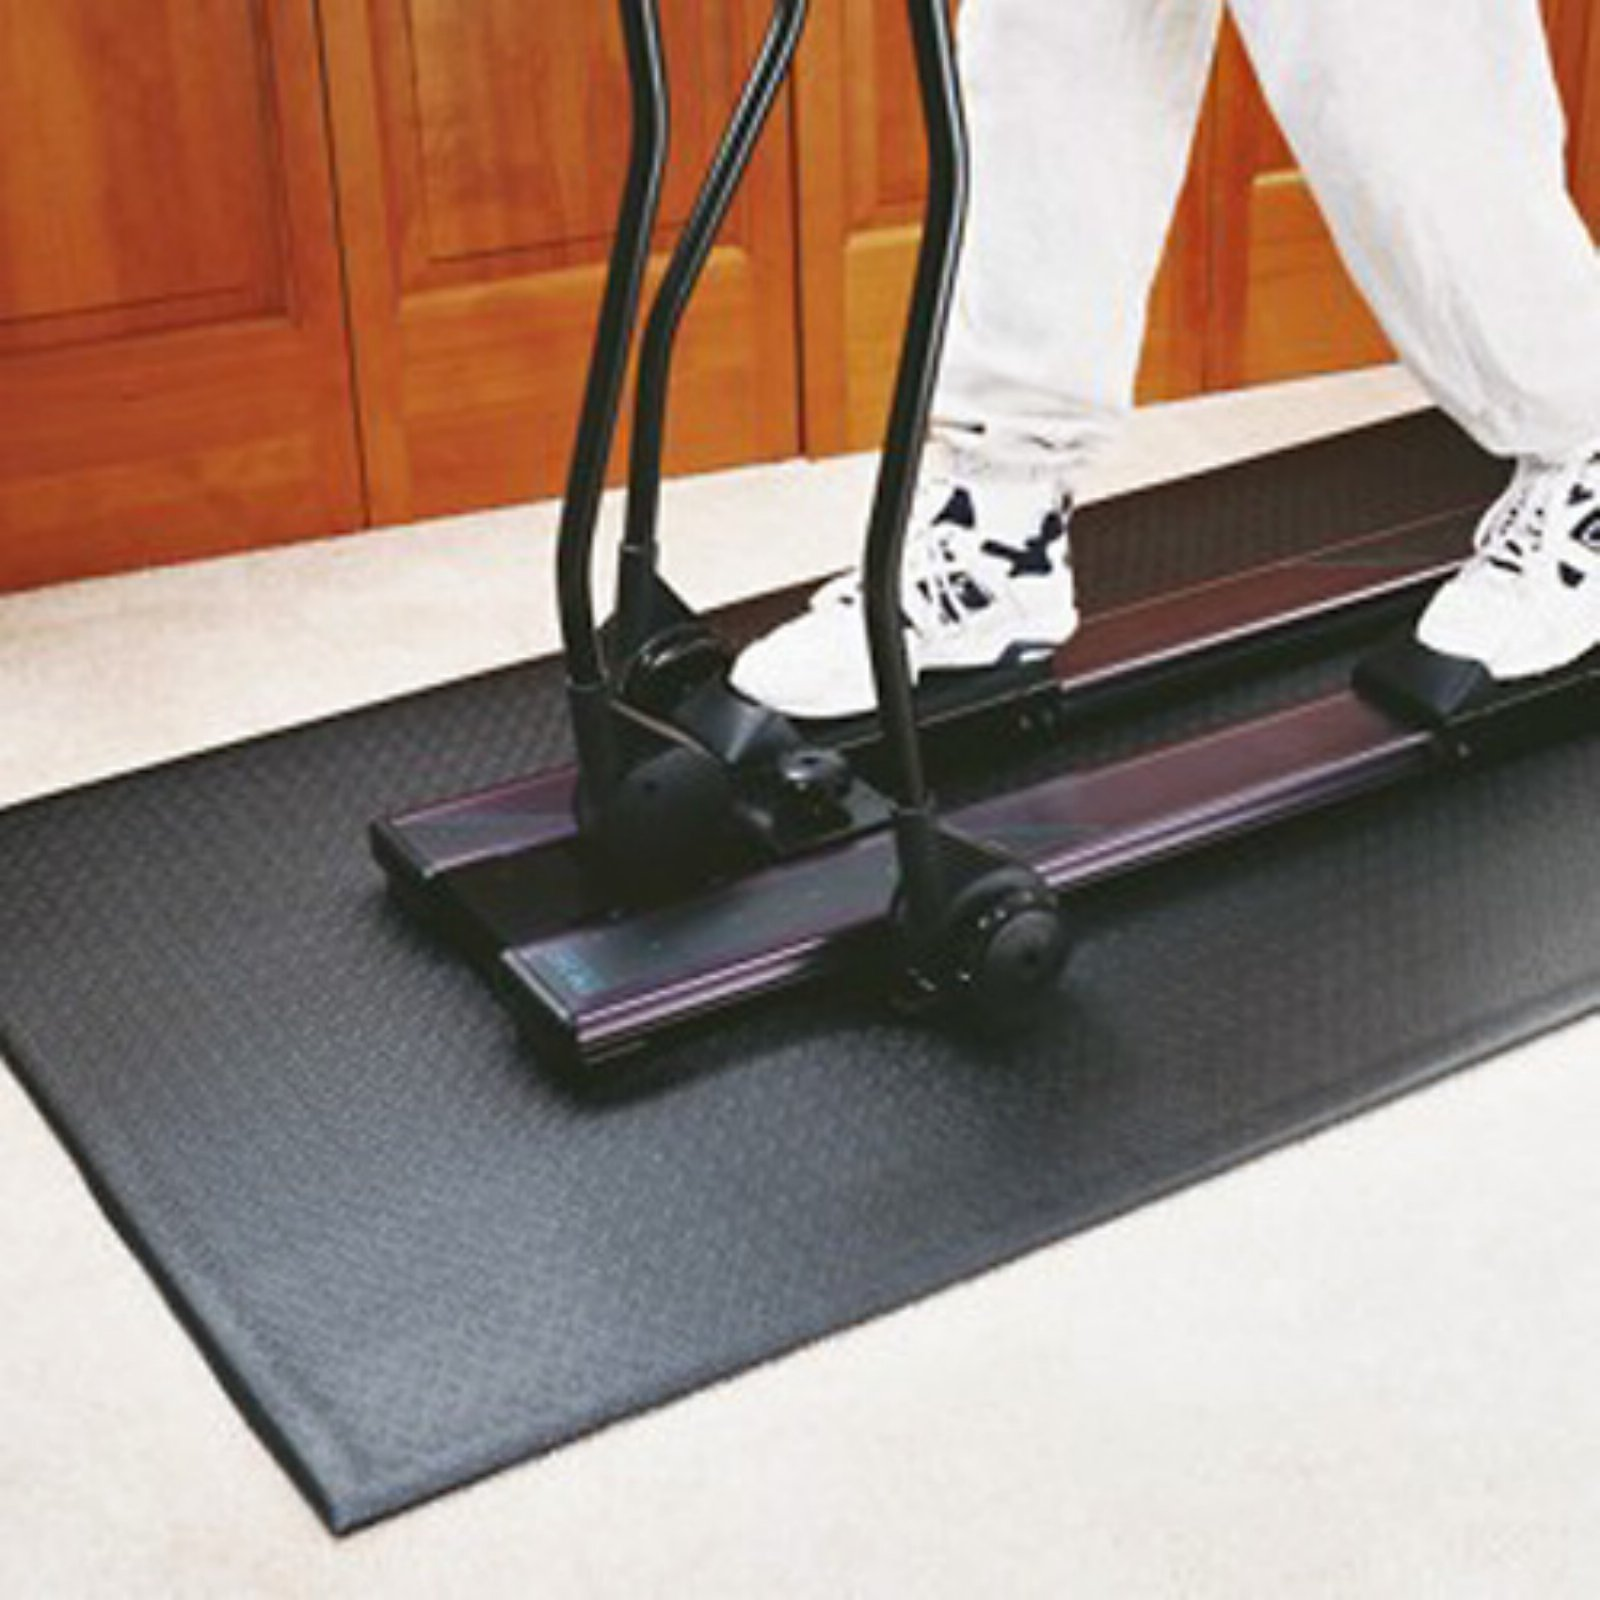 Heavy Duty P.V.C. Equipment Mat for Upright Indoor Cycles by Supermats